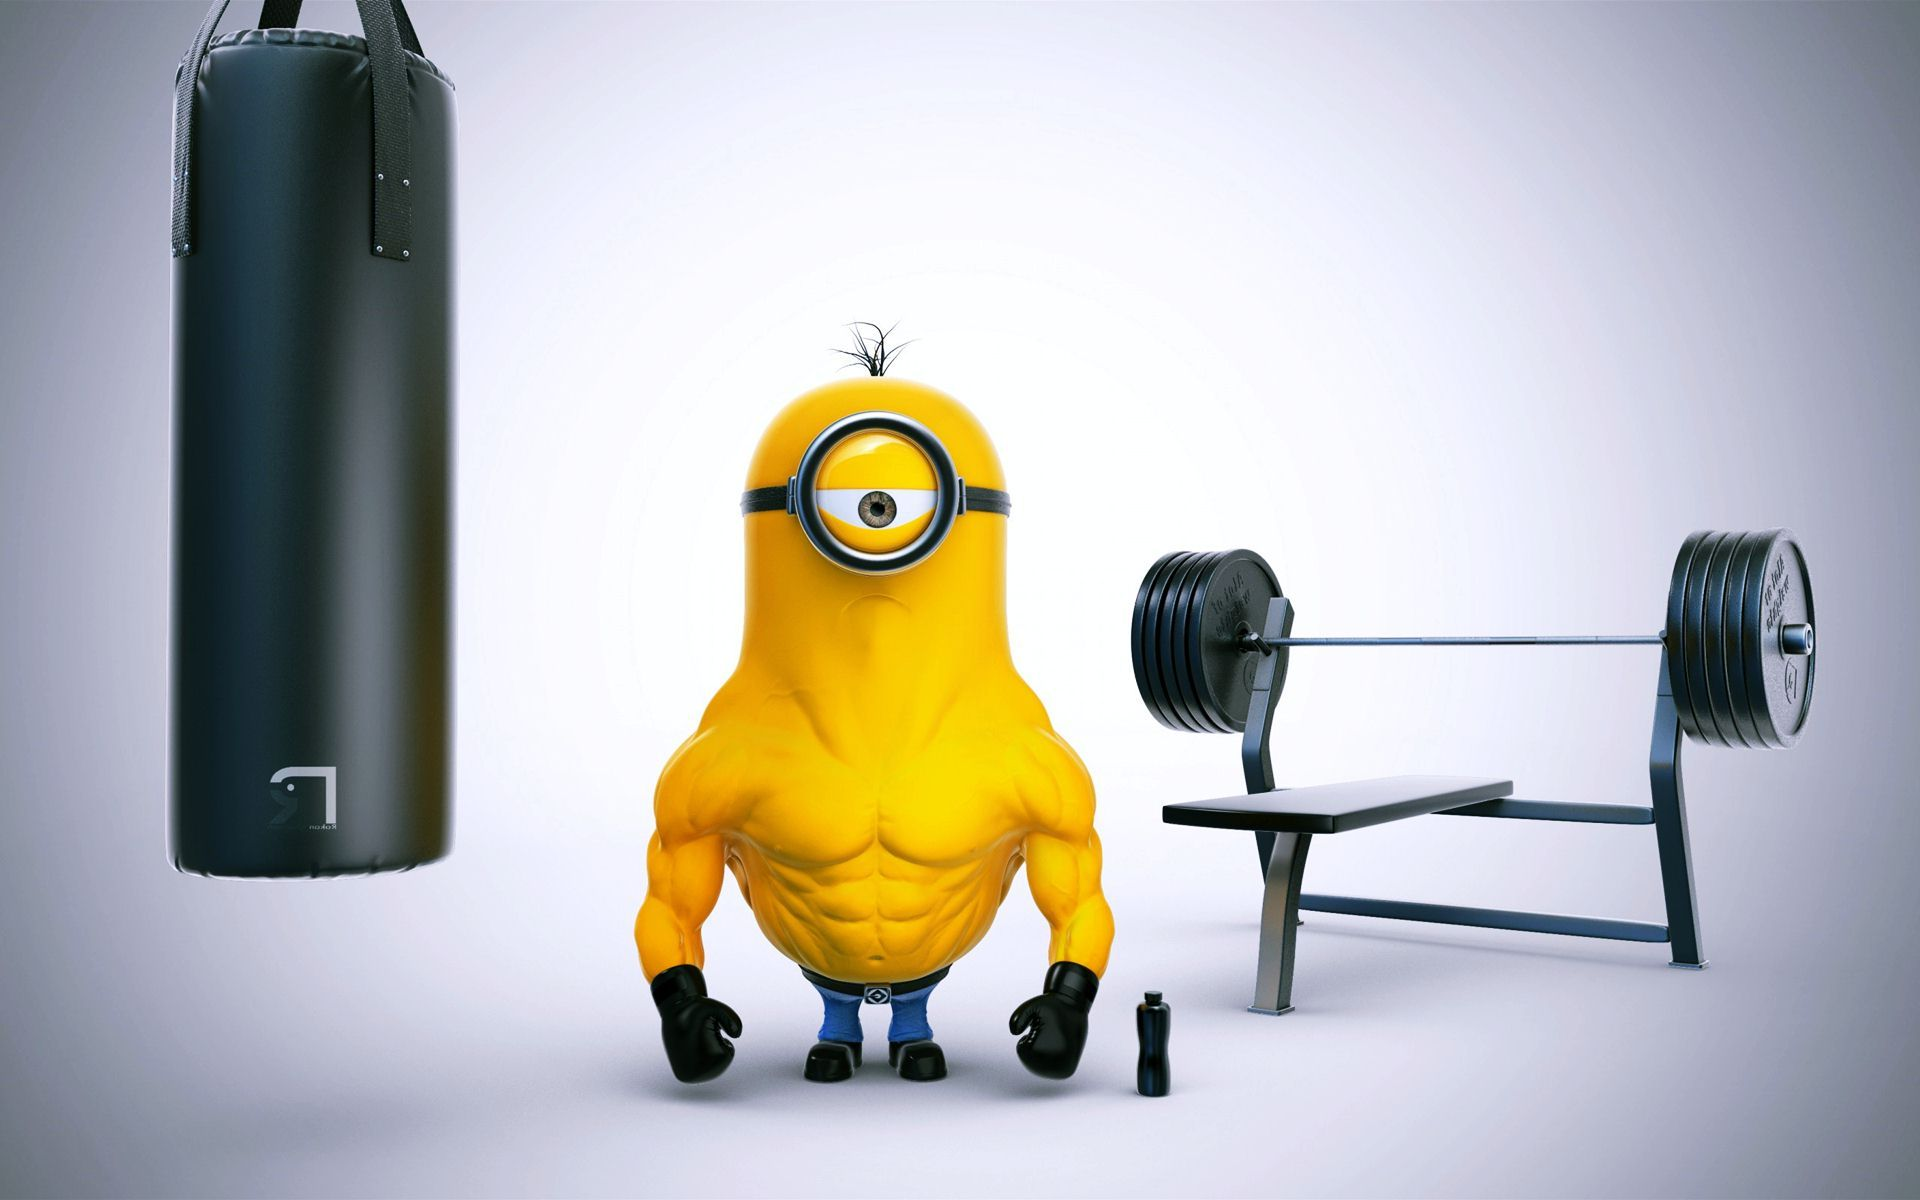 Cute Minion Wallpapers HD for Desktop 41 1920x1200